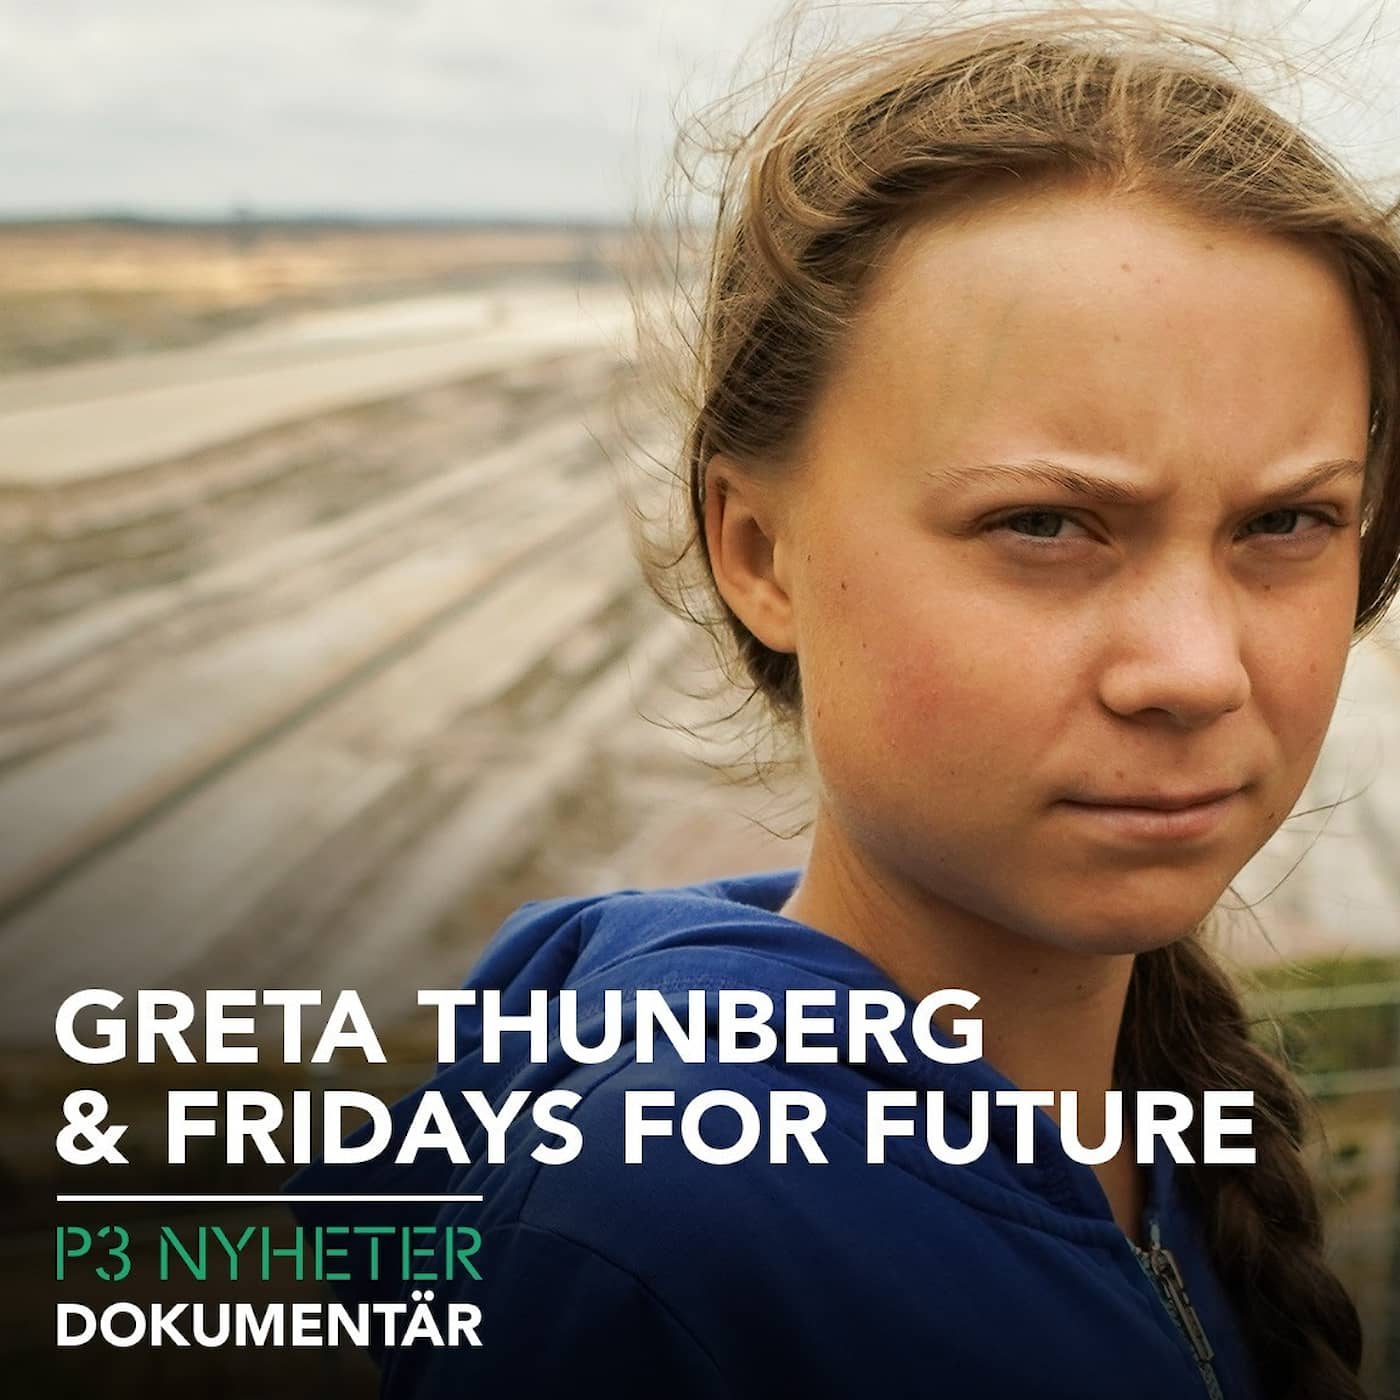 Greta Thunberg och Fridays for future - P3 Nyheter dokumentär